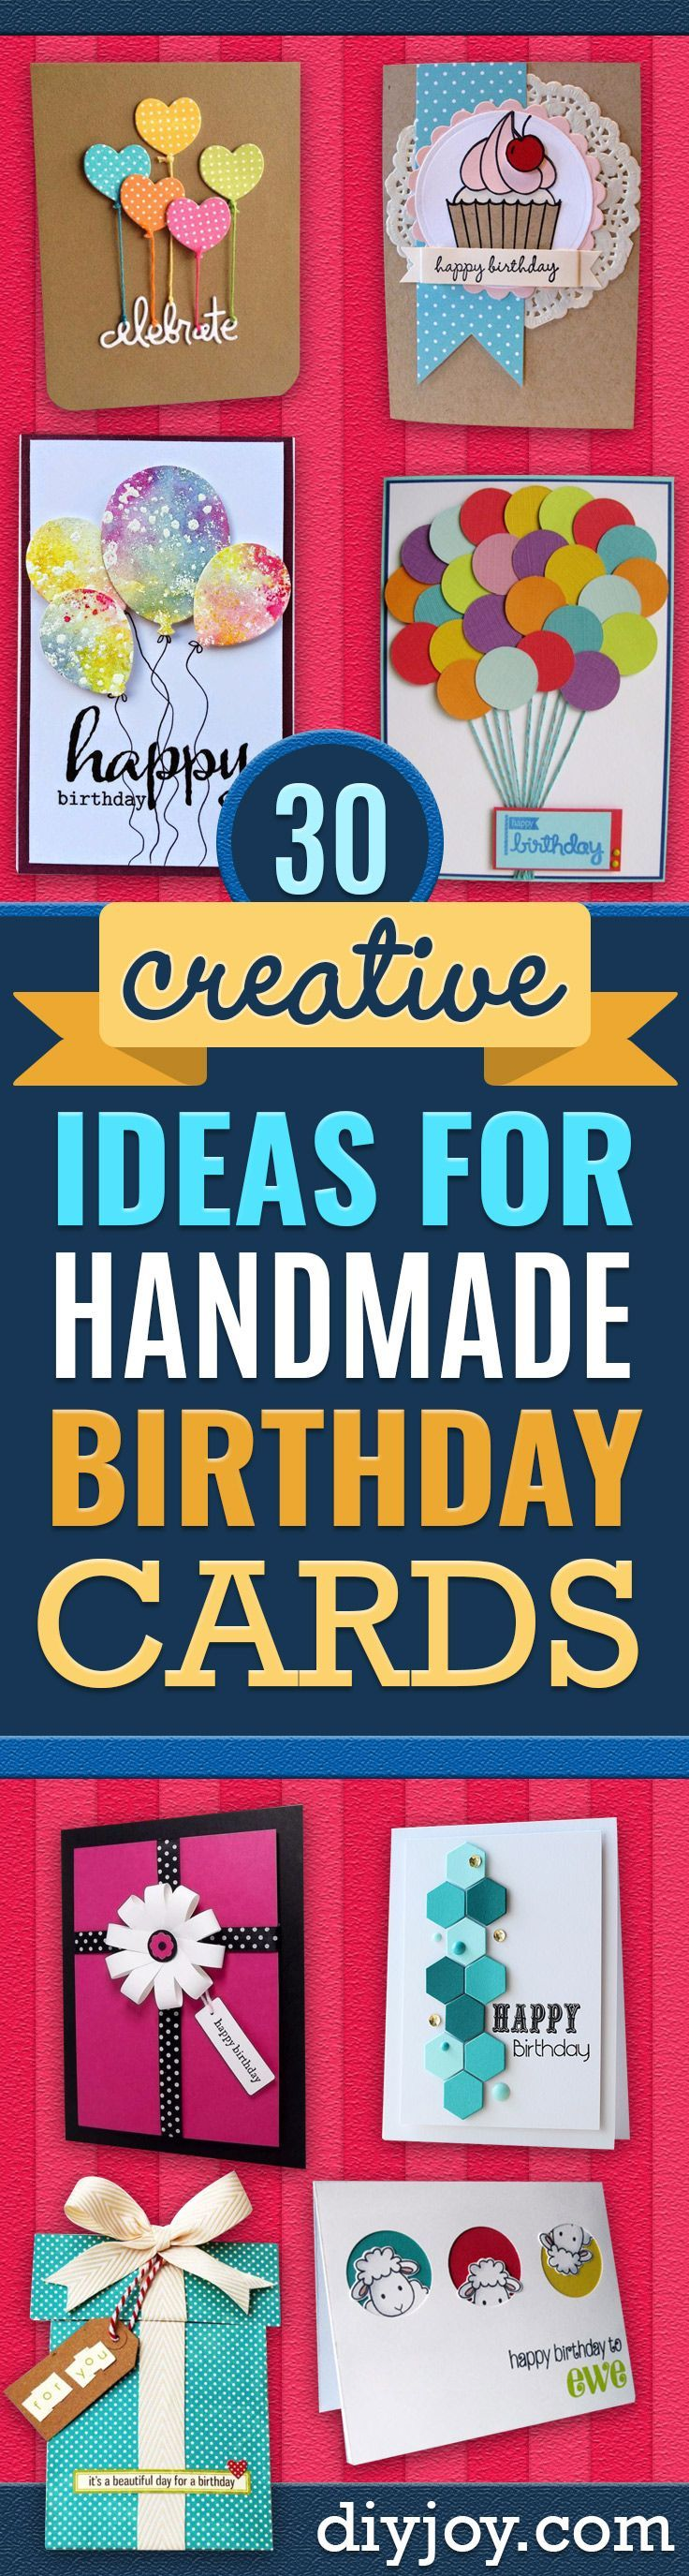 creative ideas for handmade birthday cards diy paper crafts